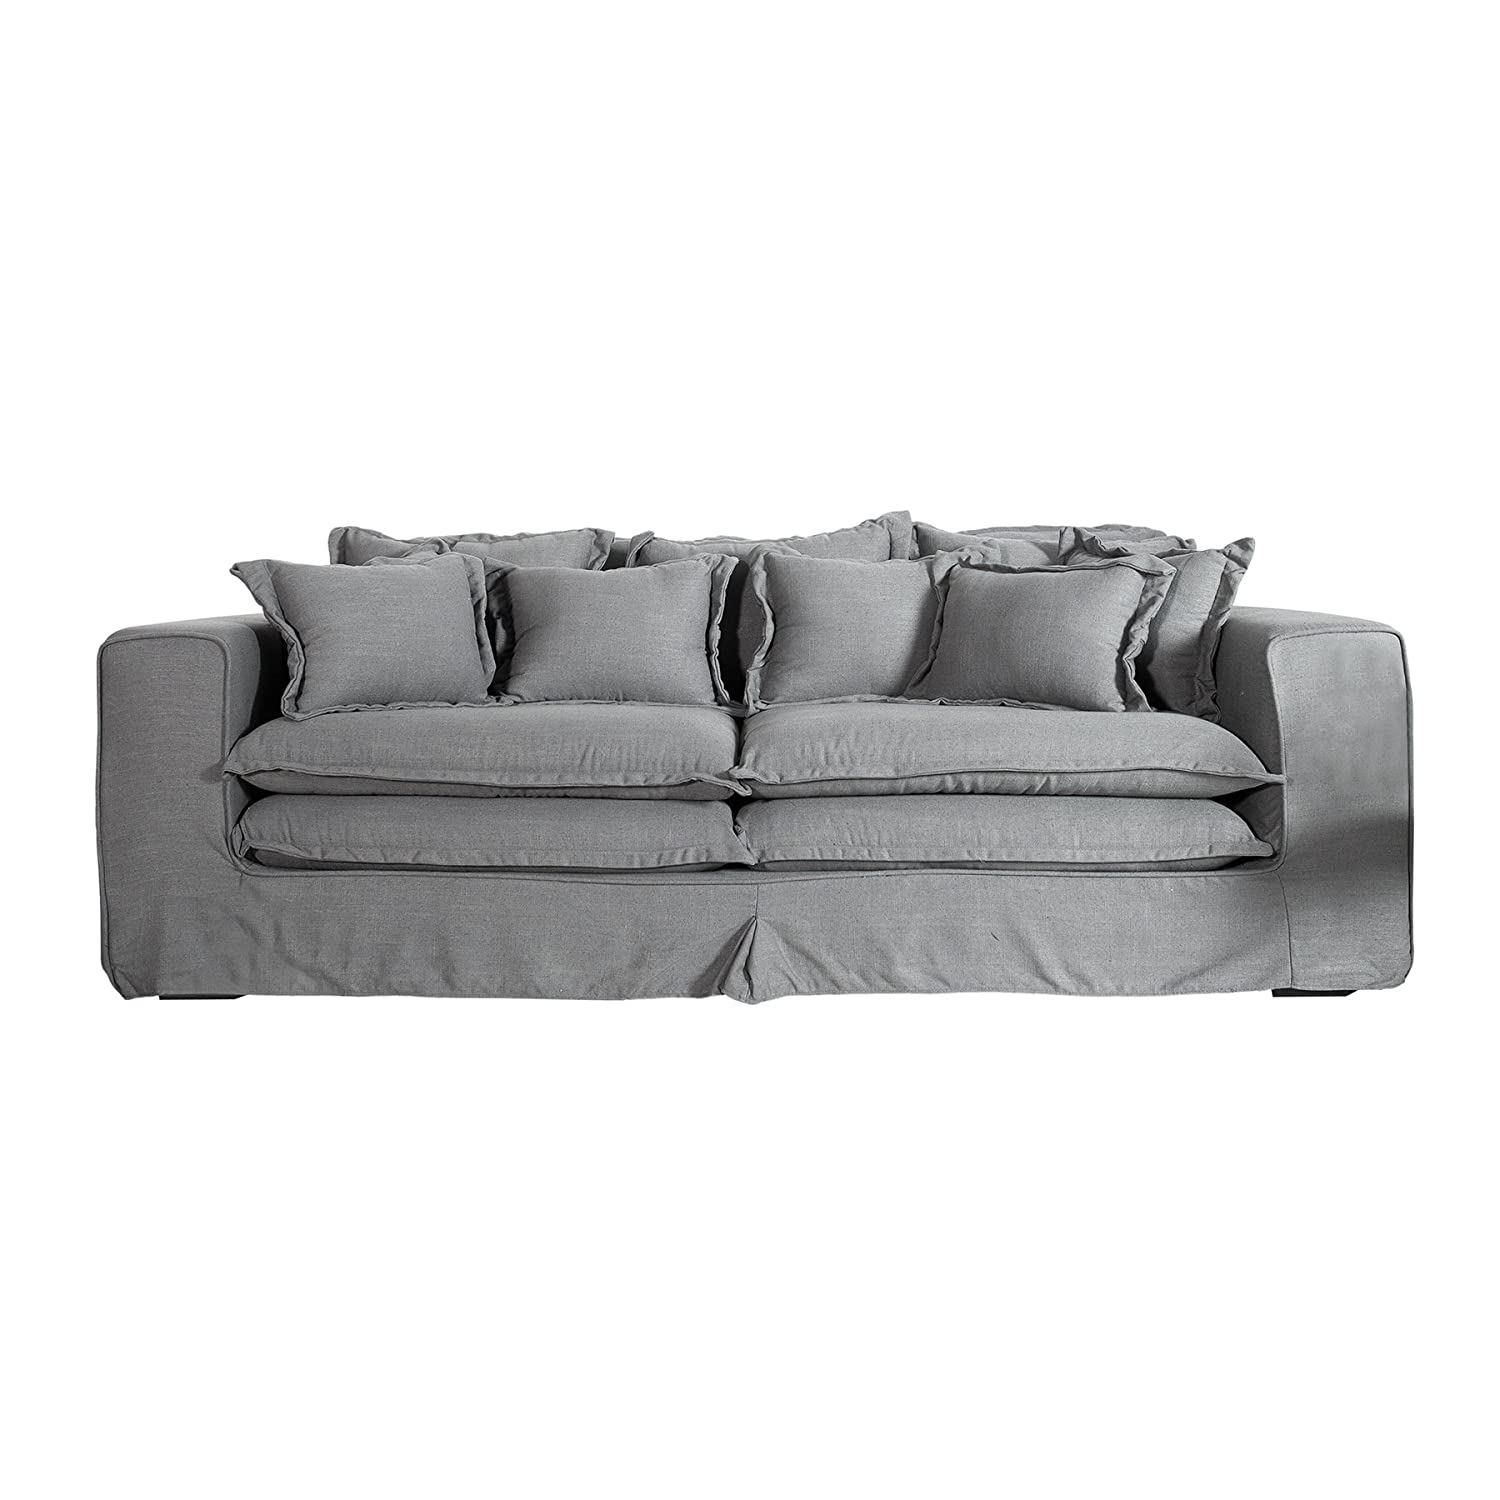 Eckschlafcouch  Sofas & Couches | Amazon.de